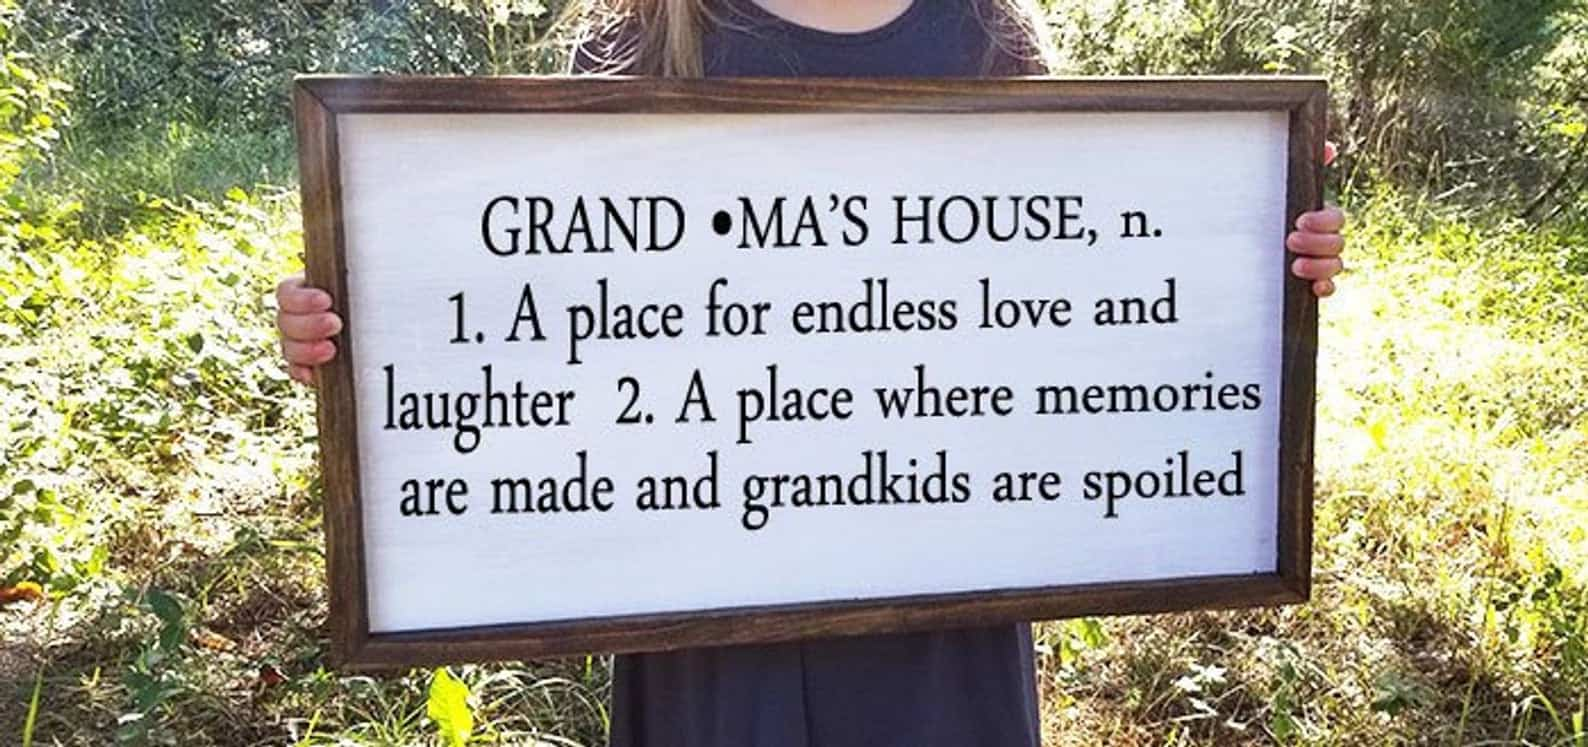 Grnadma's House Wooden Sign